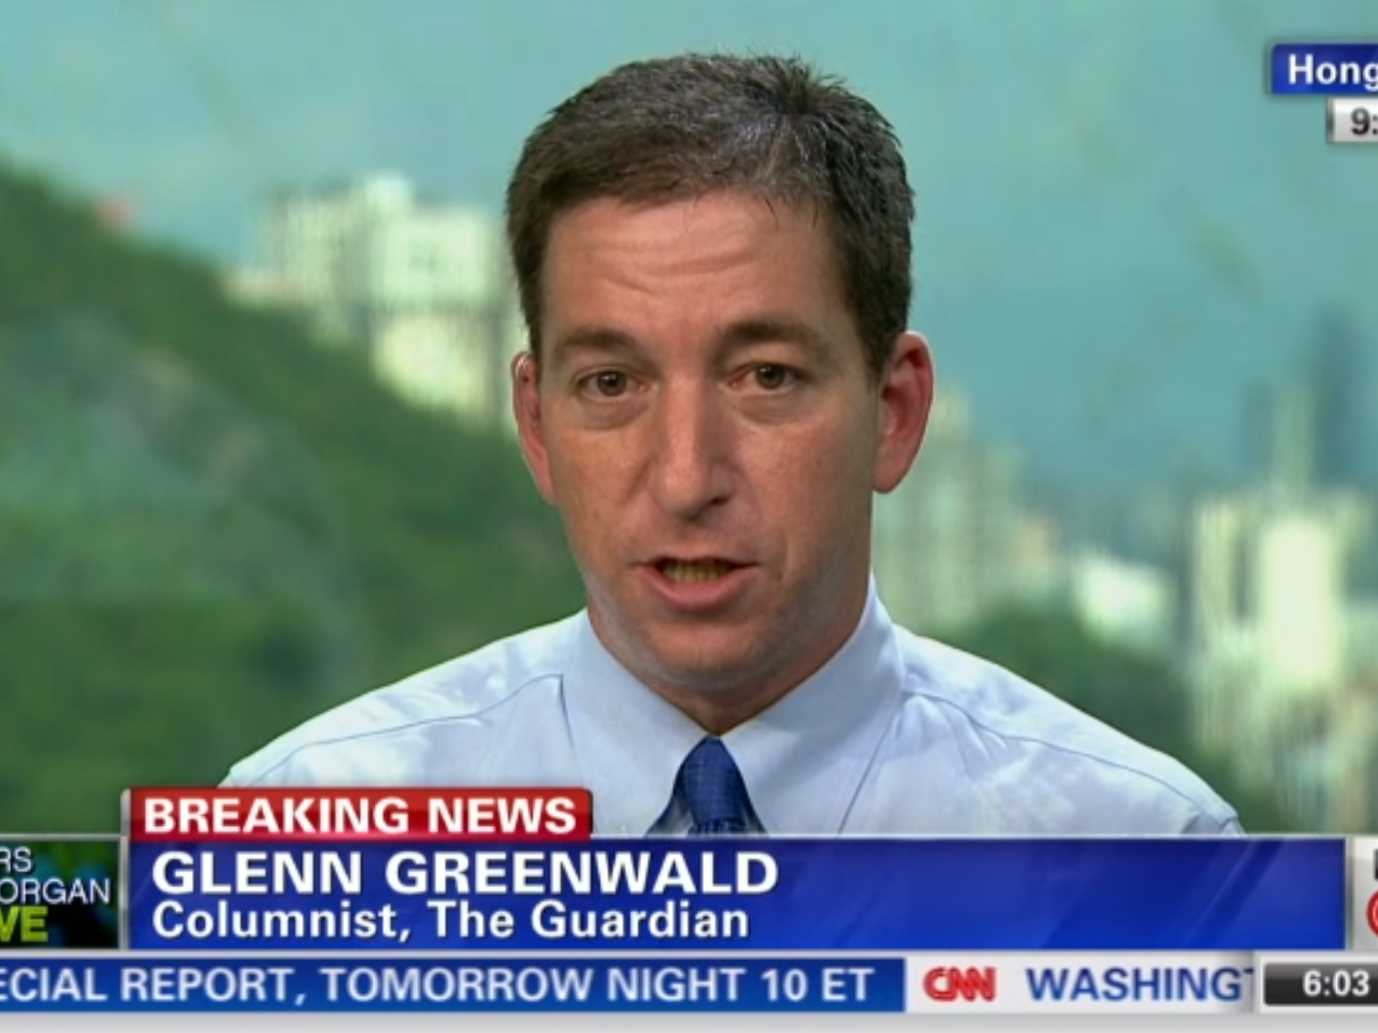 gop-congressman-on-glenn-greenwald-he-doesnt-have-a-clue-how-this-thing-works